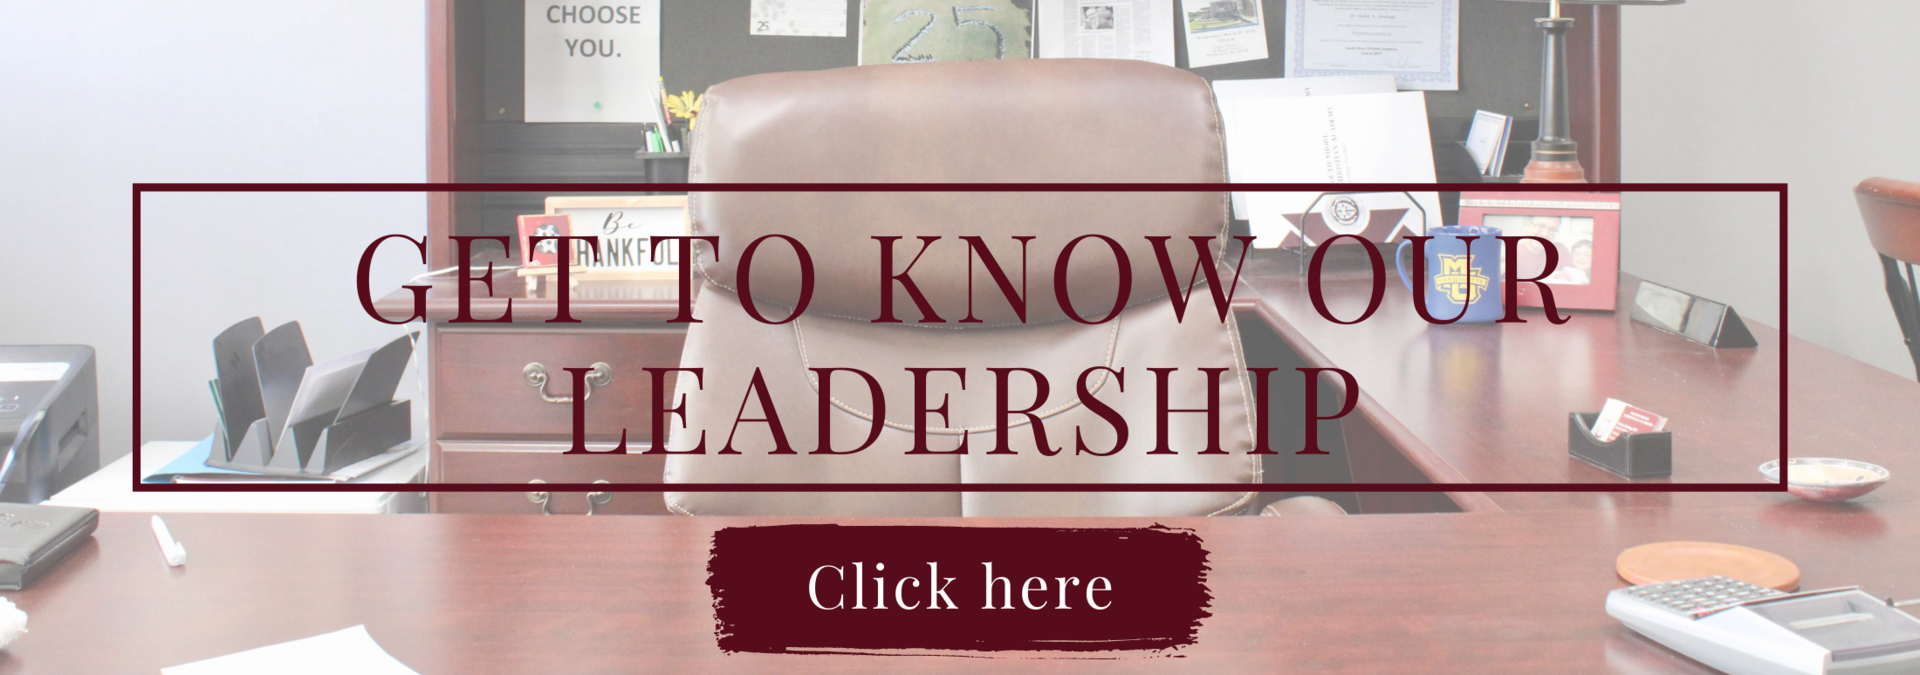 Get to know our leadership